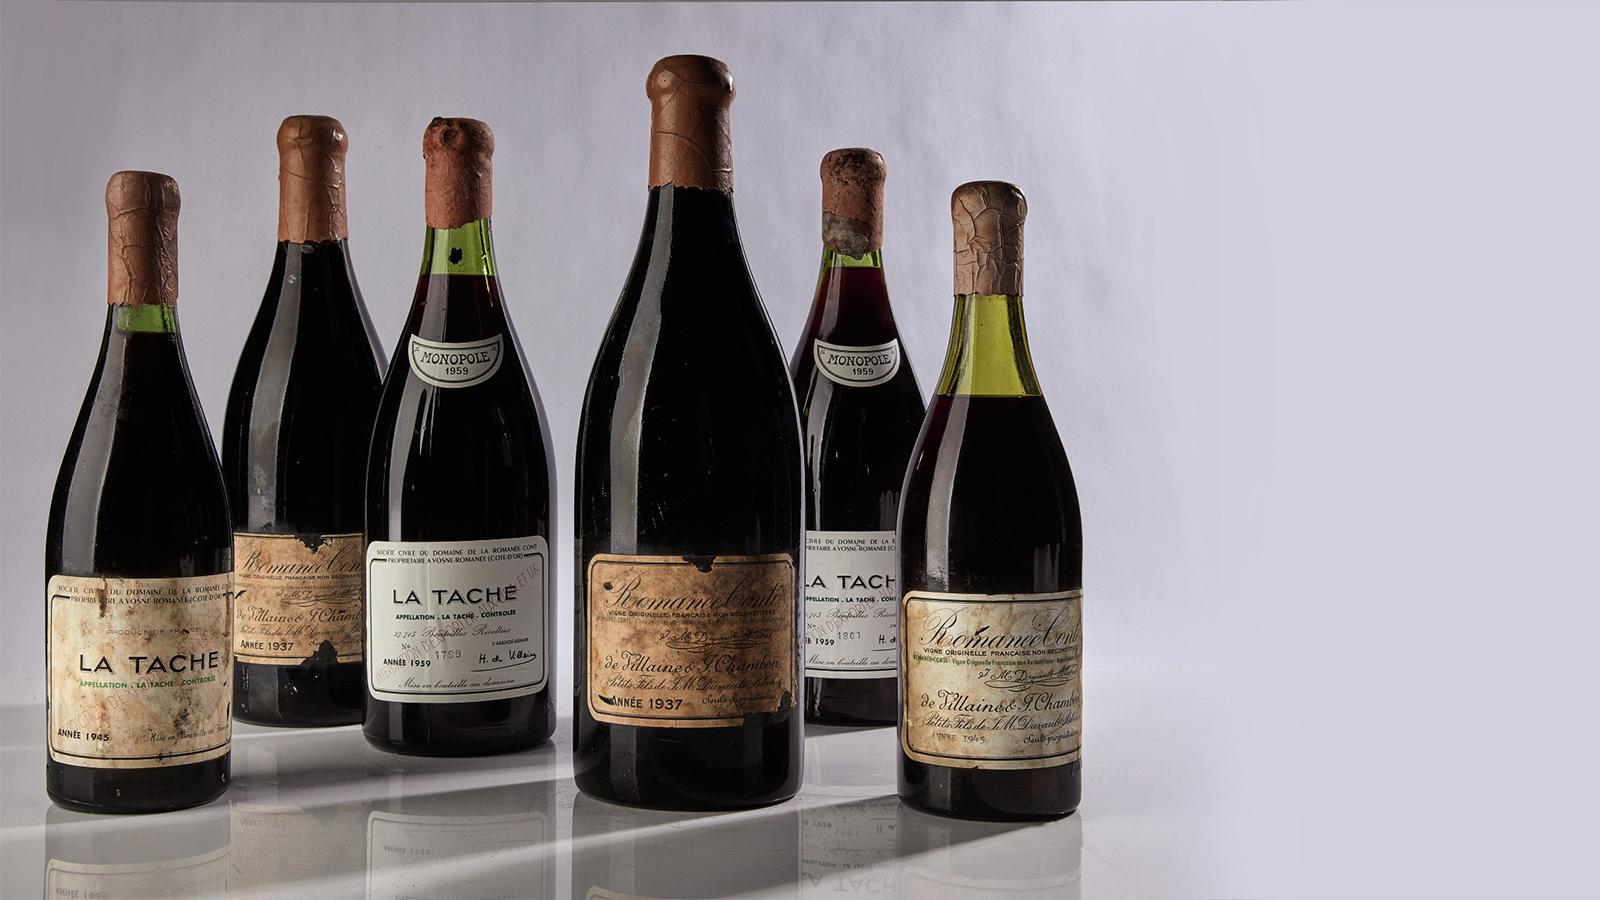 DRC 1945 Sets Auction Record